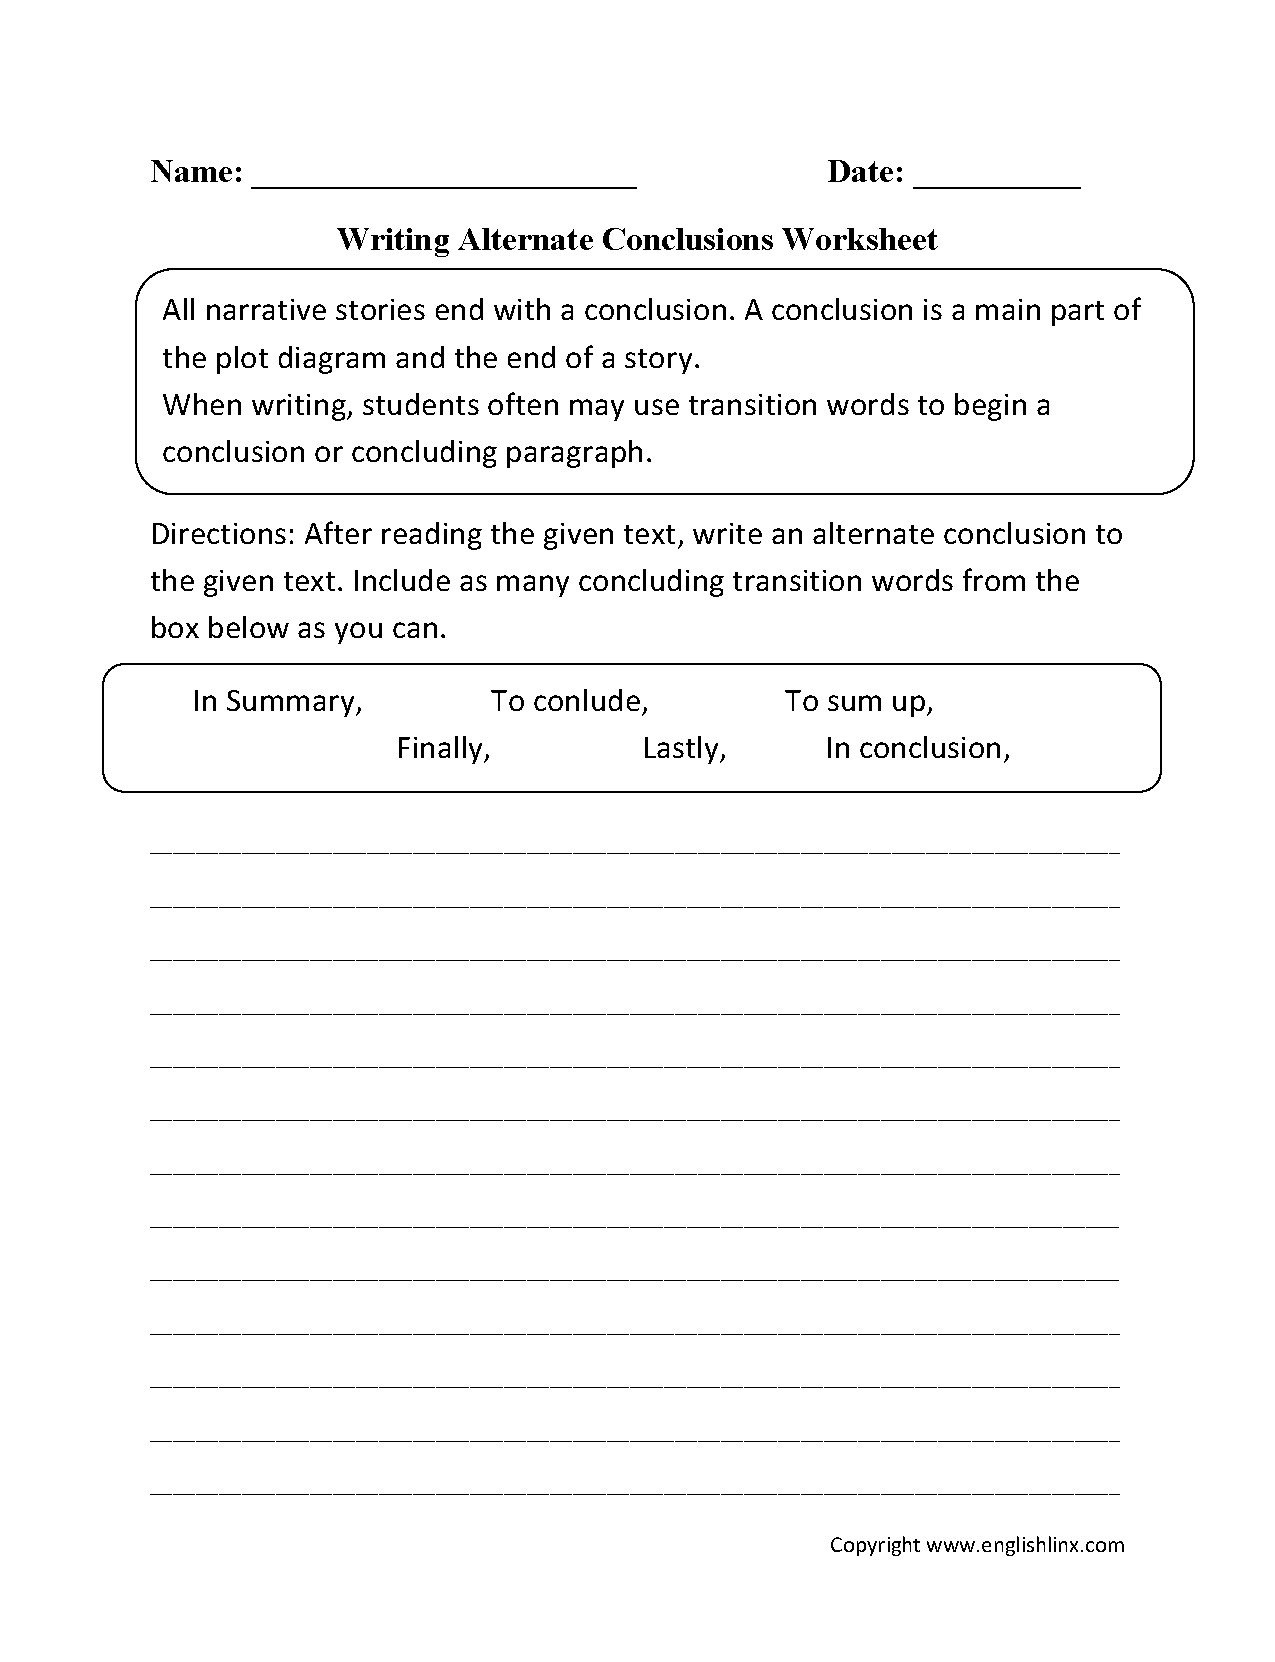 027 englishlinx writing conclusions worksheets pertaining to conclusion paragraph examples 5th grade research